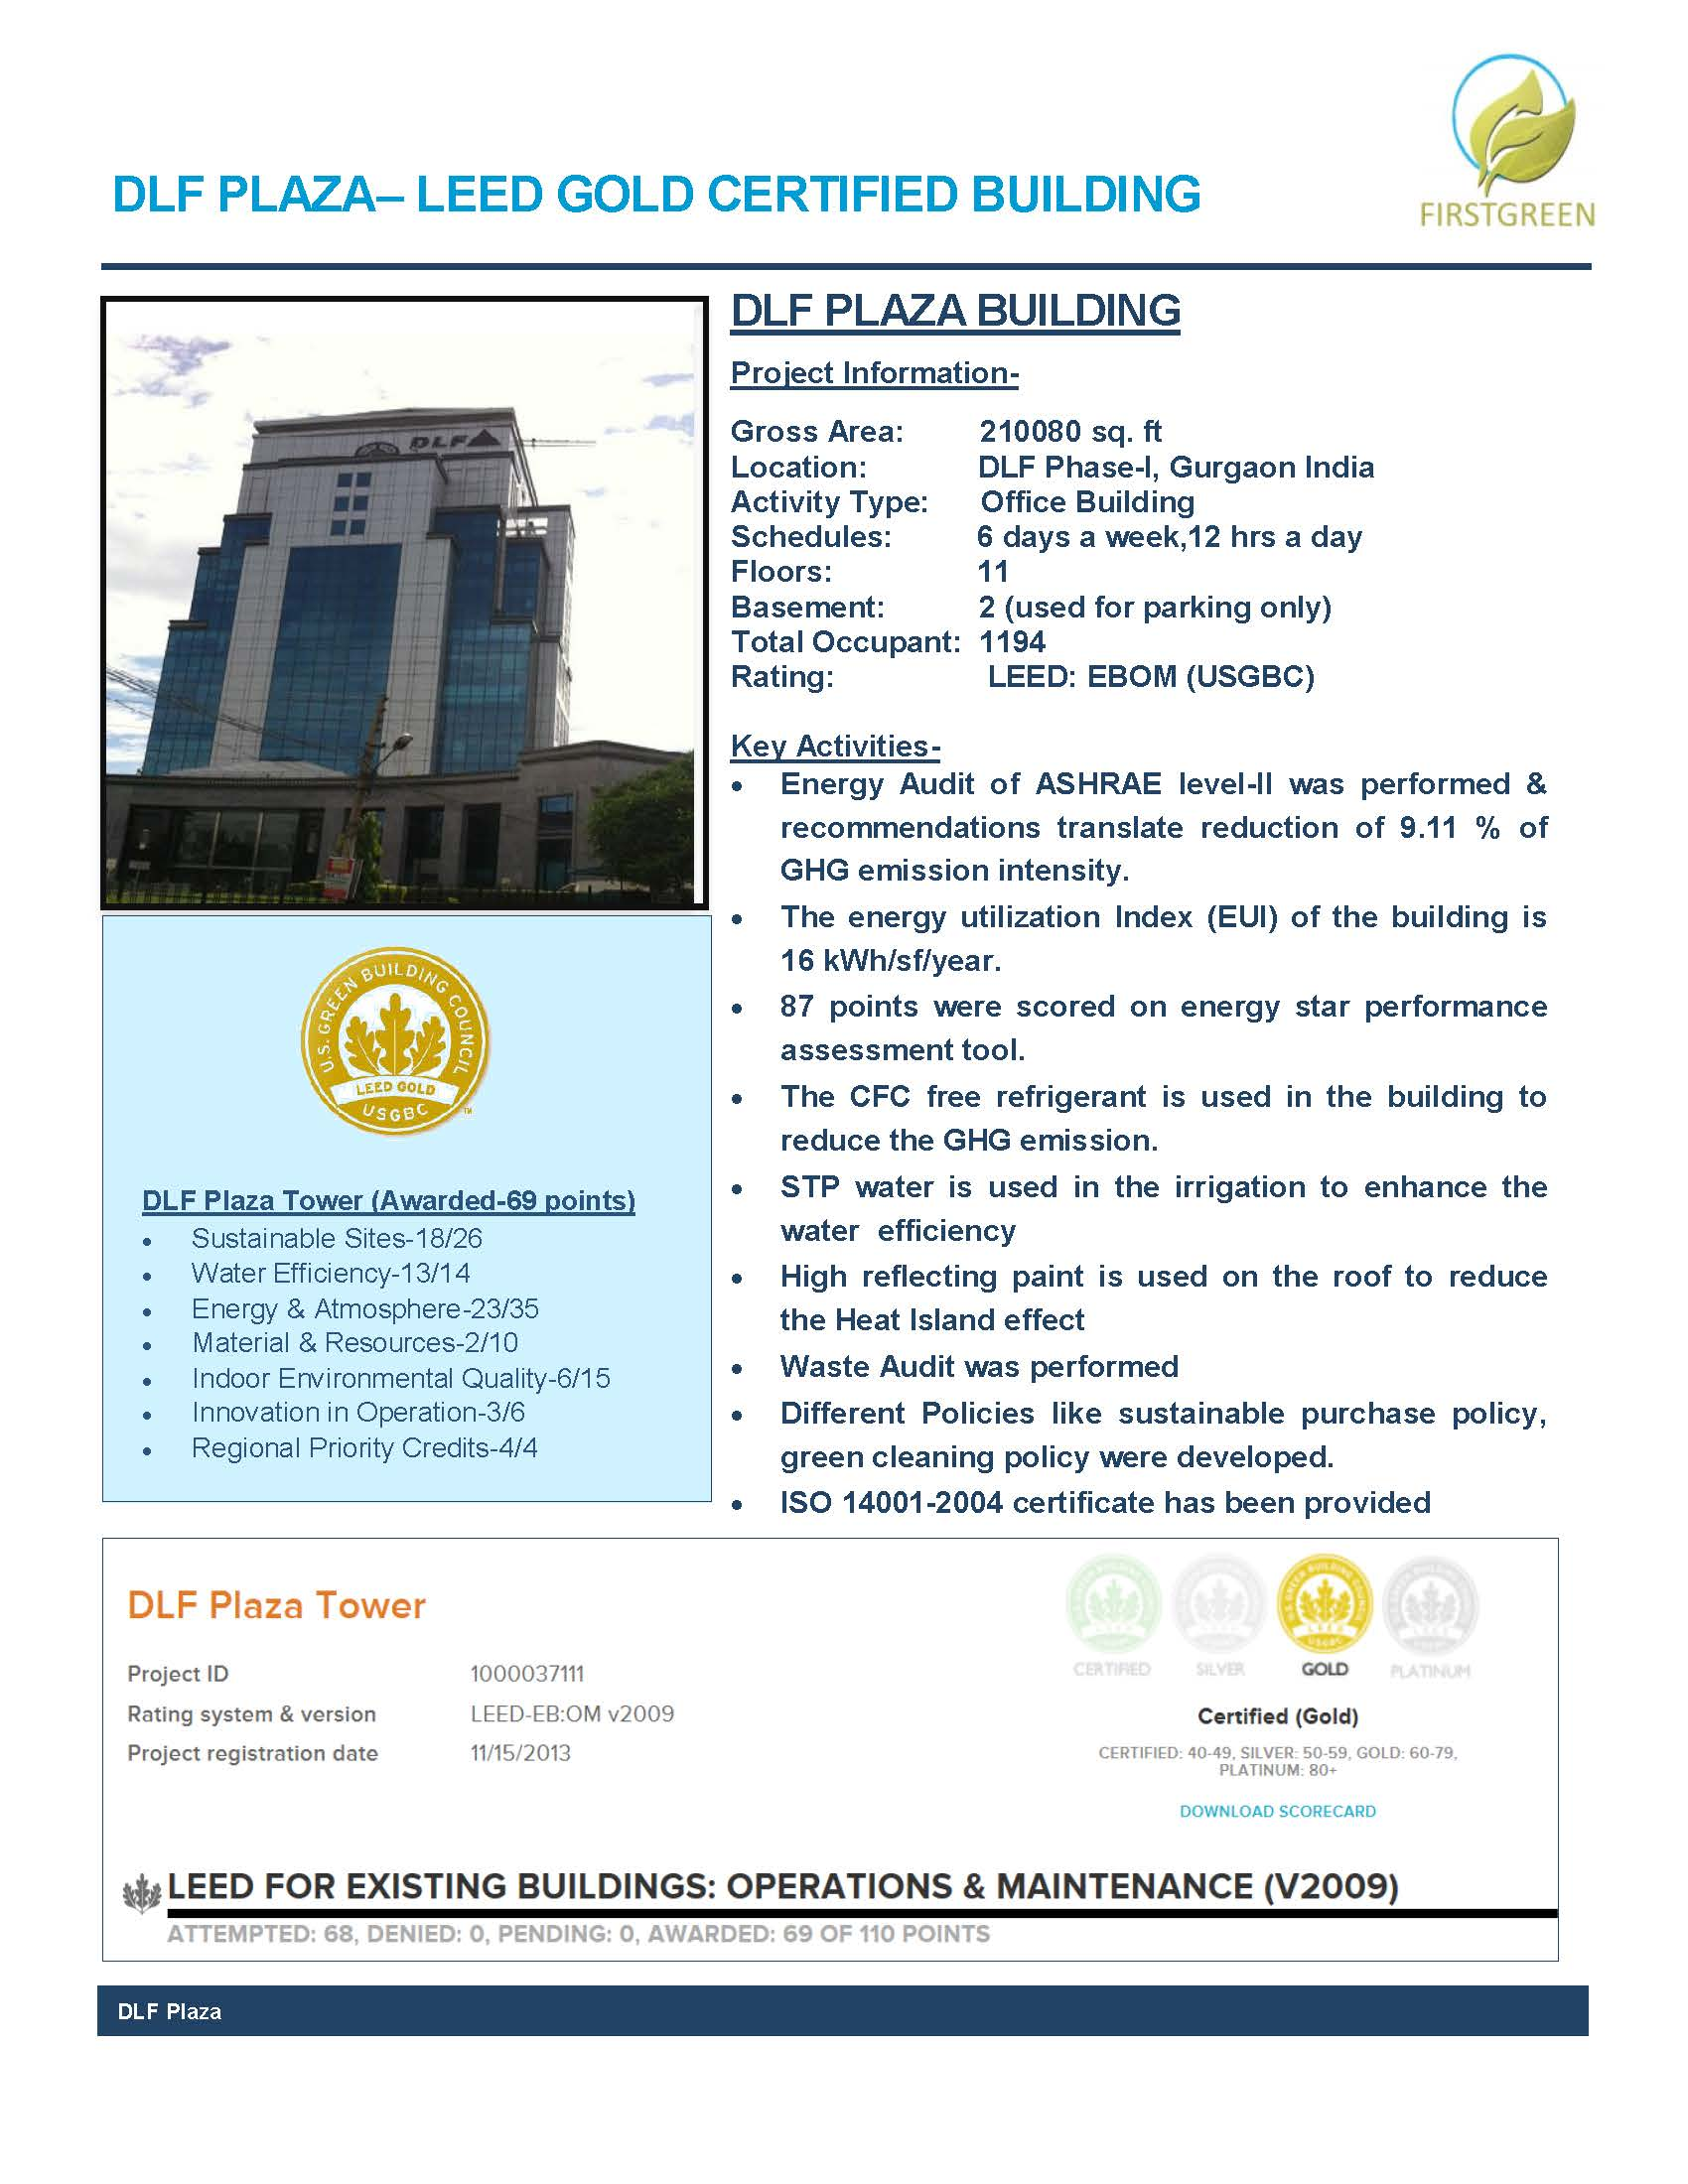 Leed Gold Certification Of Dlf Buildings By Firstgreen